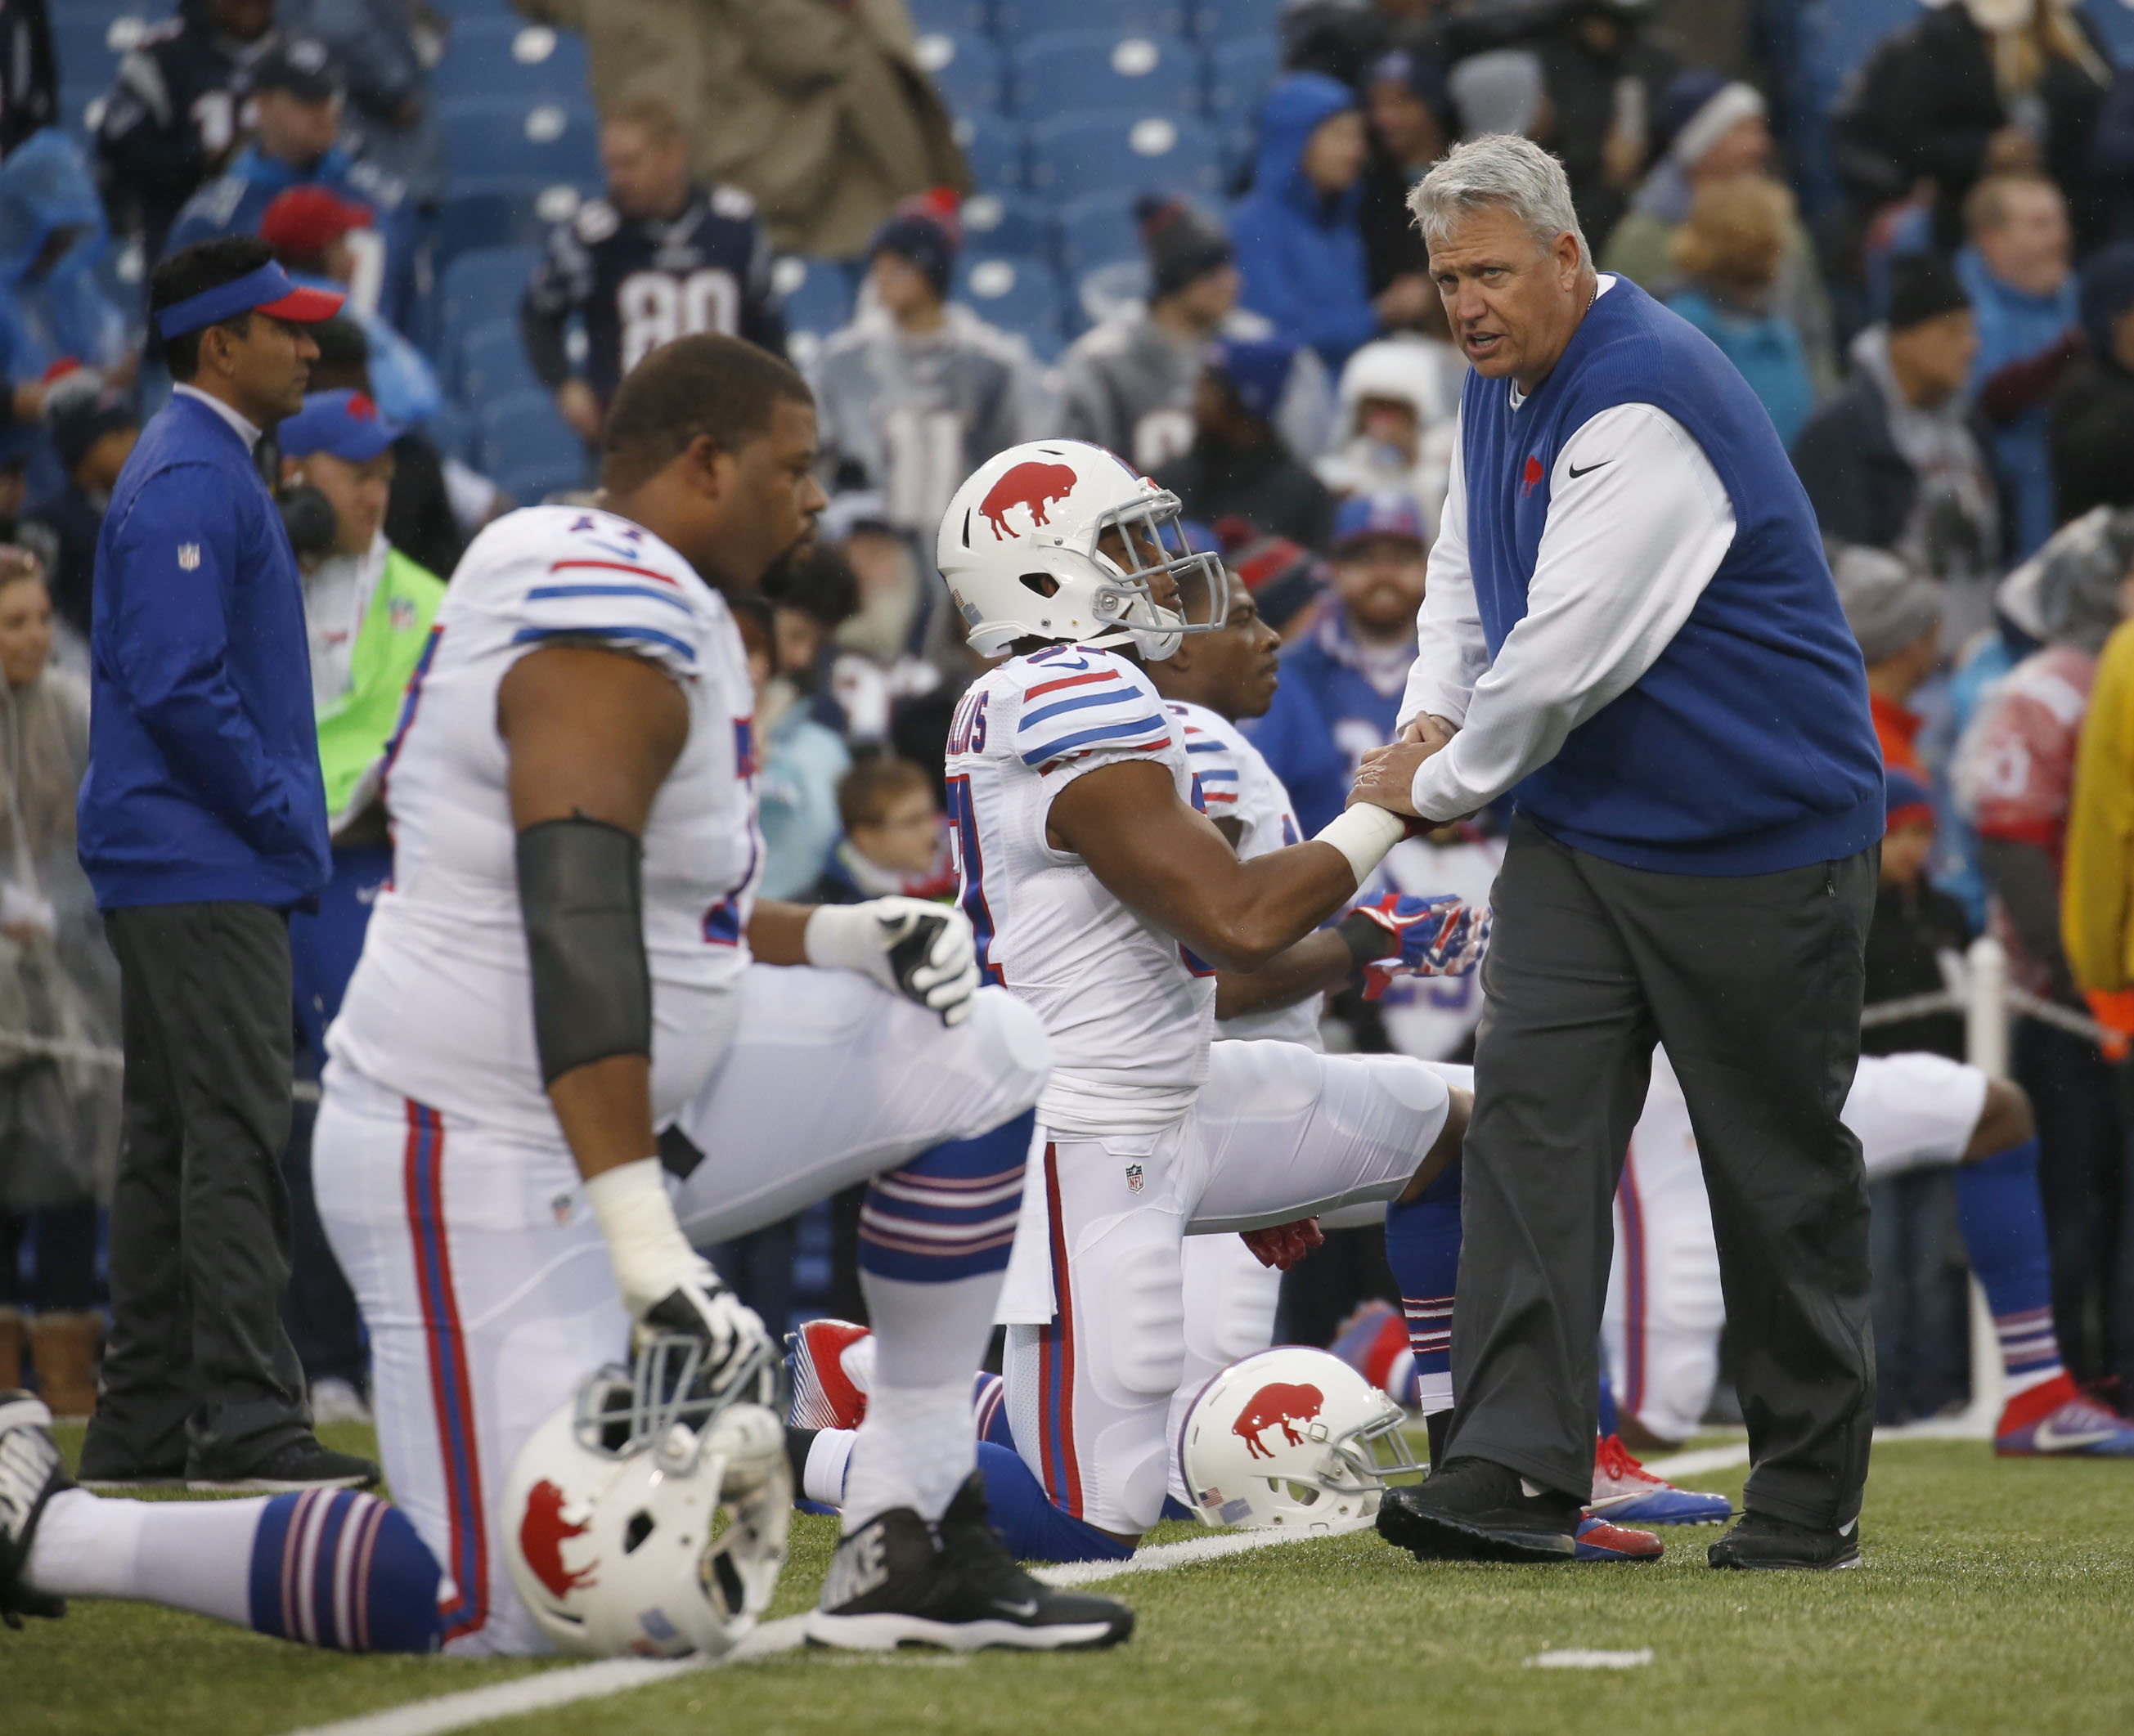 Rex Ryan meets with players prior to Sunday's game against New England. (Robert Kirkham/Buffalo News)